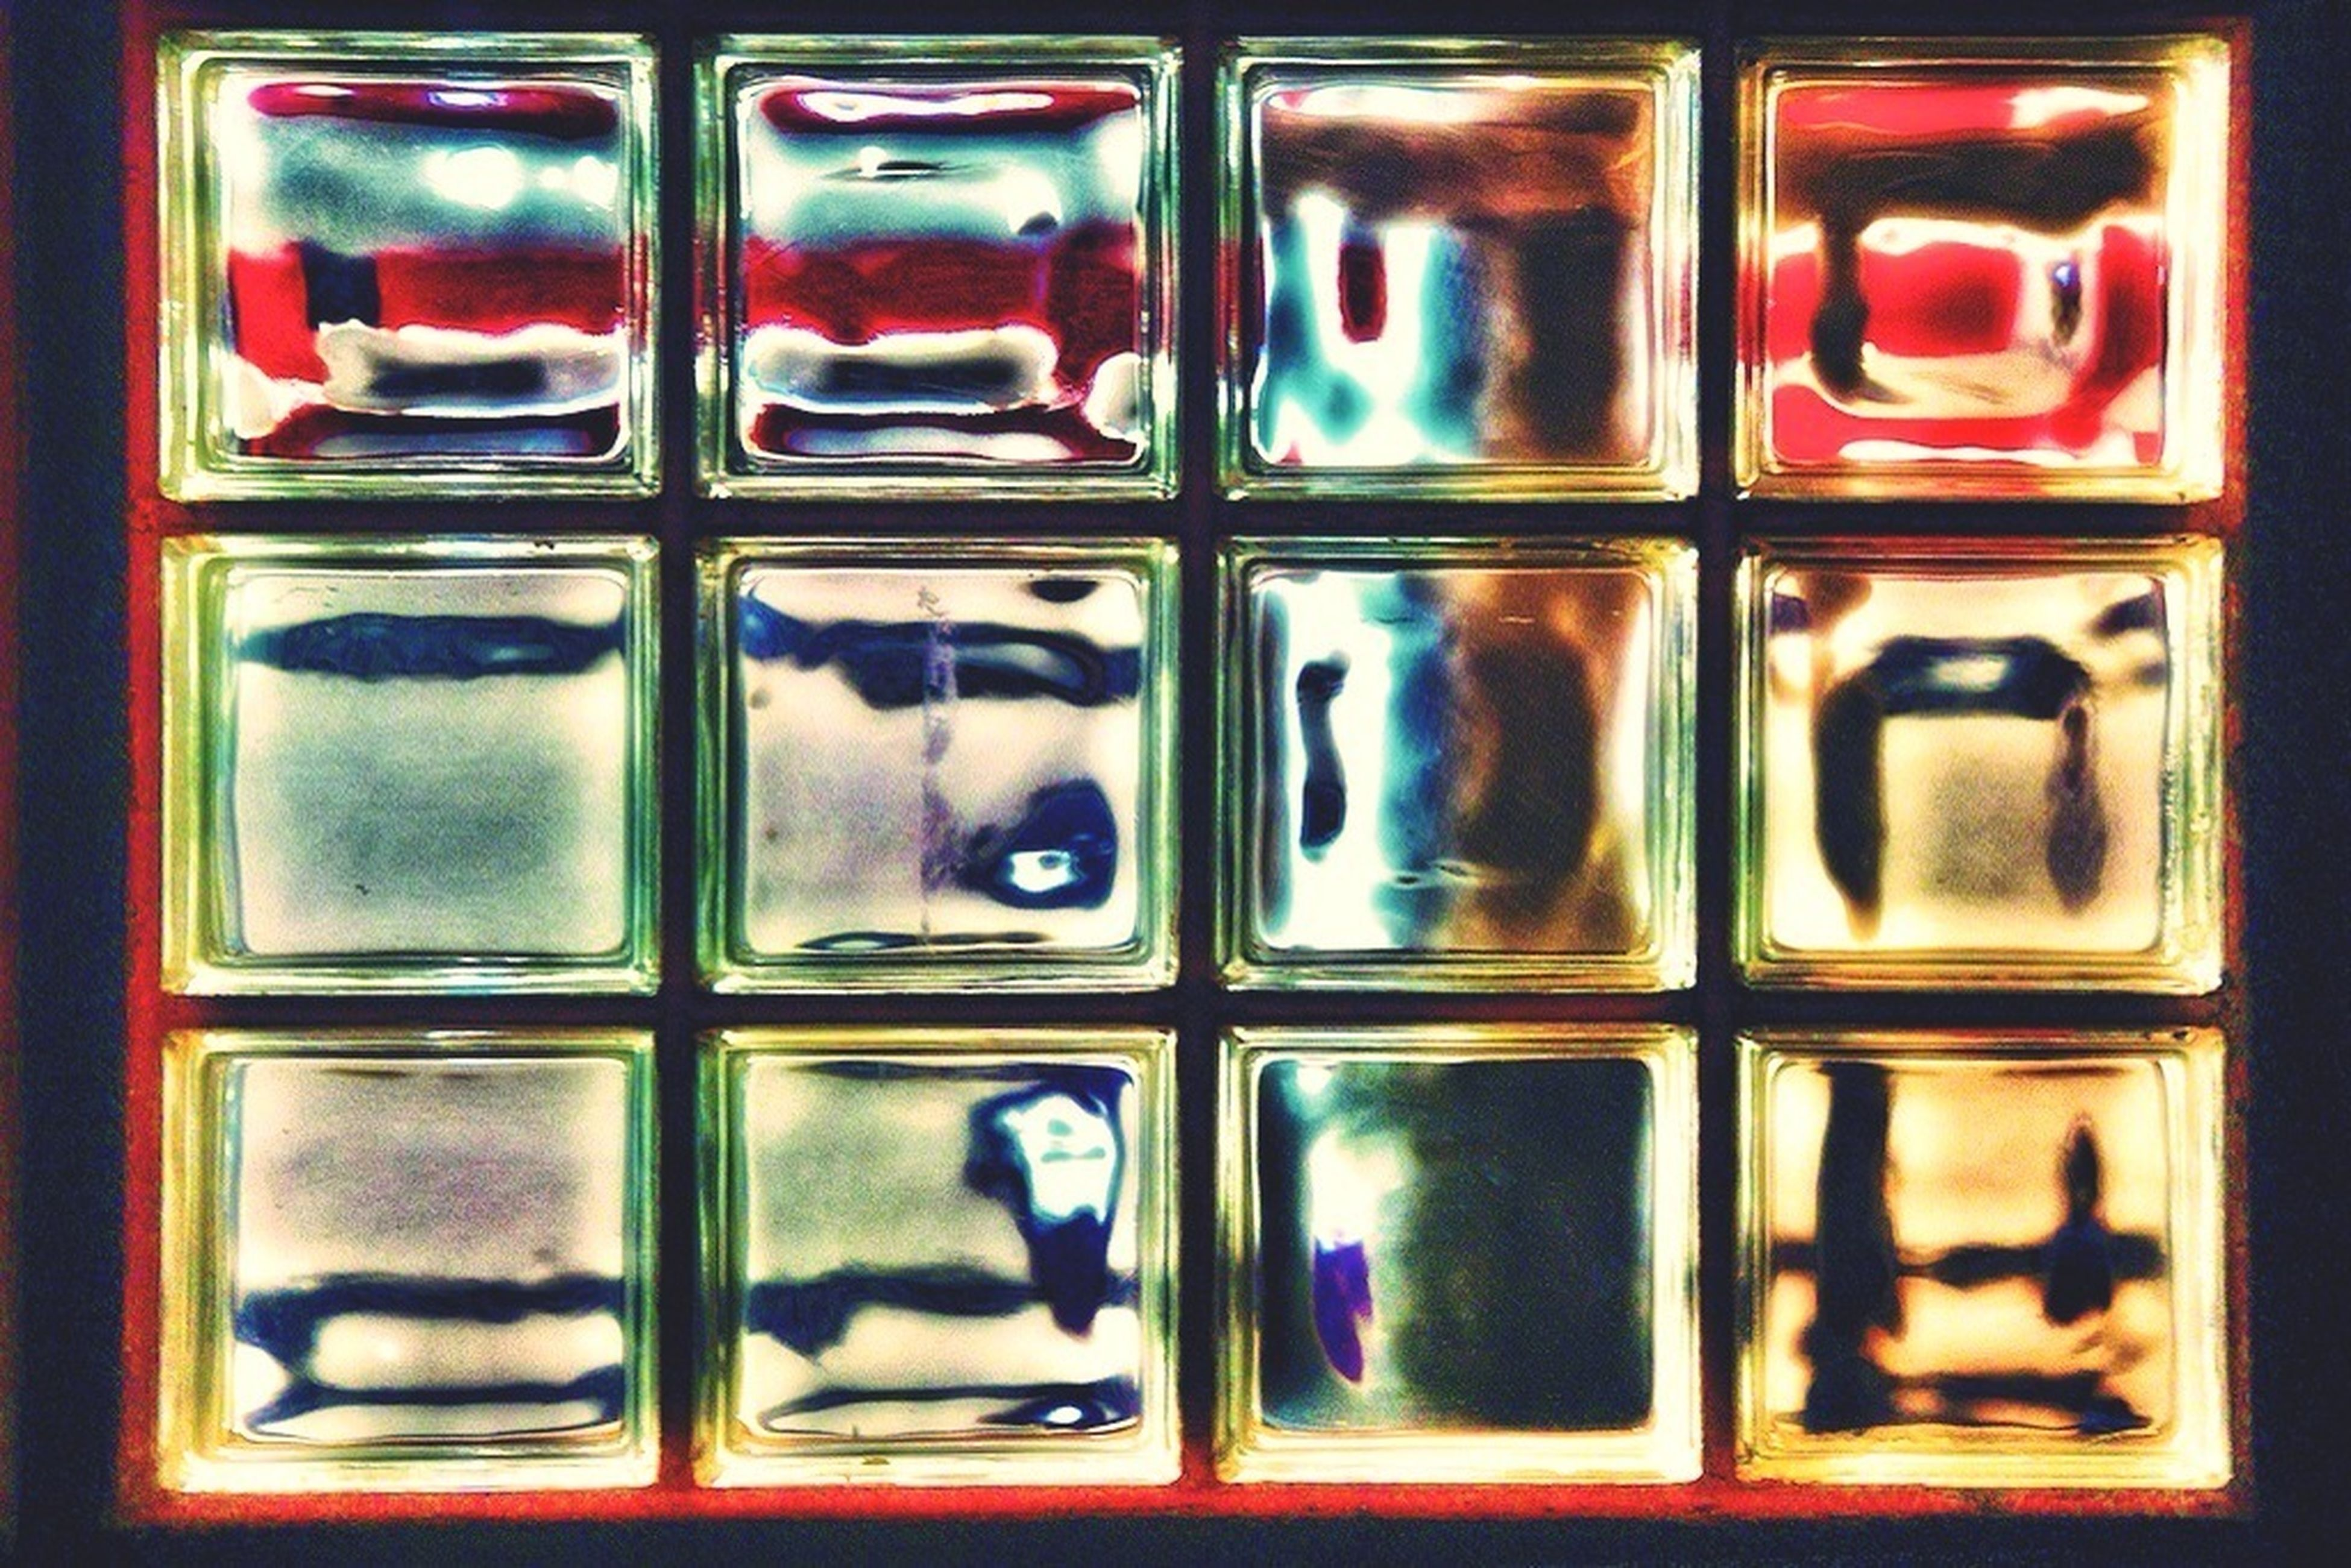 full frame, indoors, backgrounds, close-up, red, glass - material, in a row, no people, repetition, side by side, pattern, door, still life, closed, security, metal, transparent, window, protection, safety